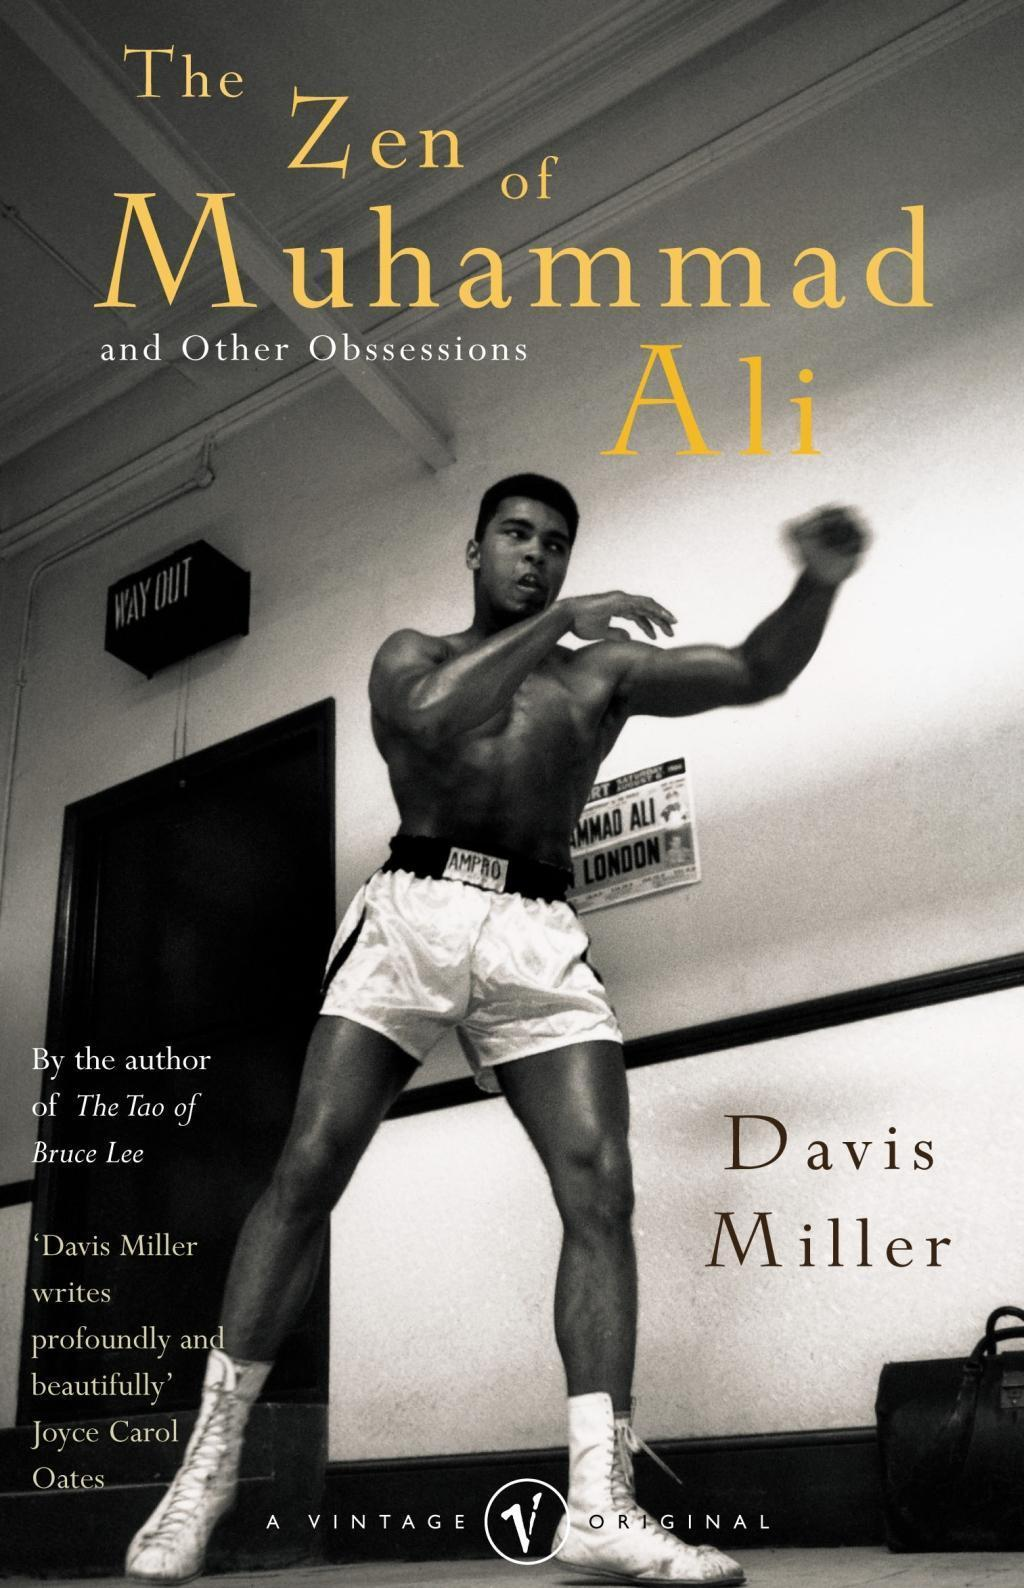 The Zen Of Muhammad Ali